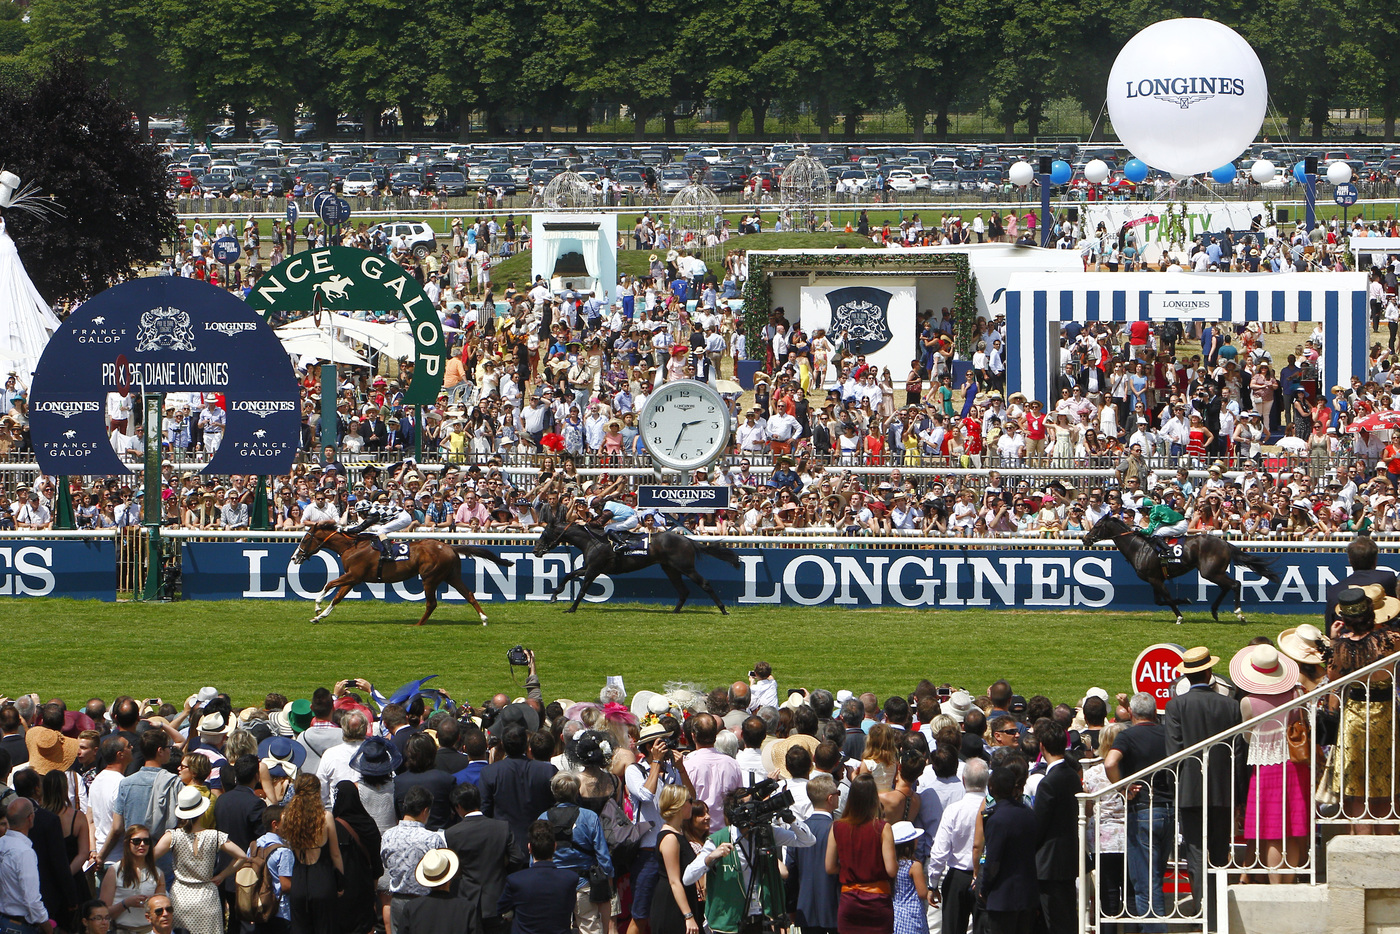 Longines Flat Racing Event: The Prix de Diane Longines – 45'000 spectators, 9 races, 1 Queen of Elegance and 1 King of the Prix de Diane Longines 12